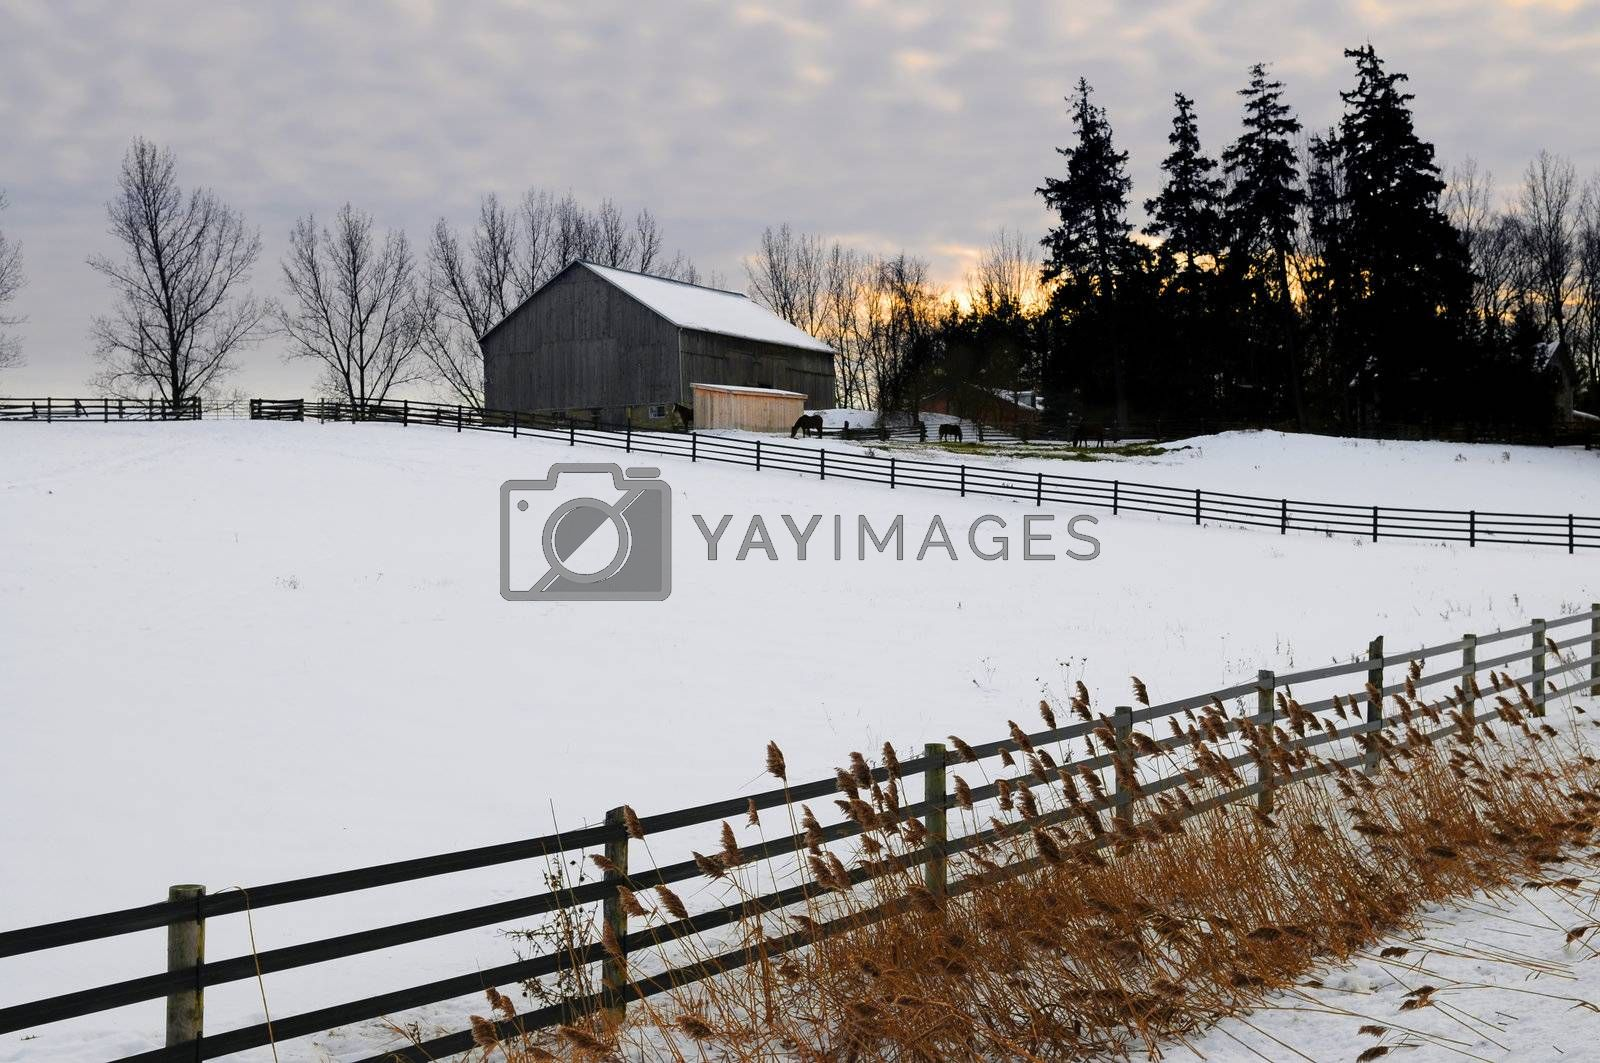 Farm with a barn and horses in winter at sunset